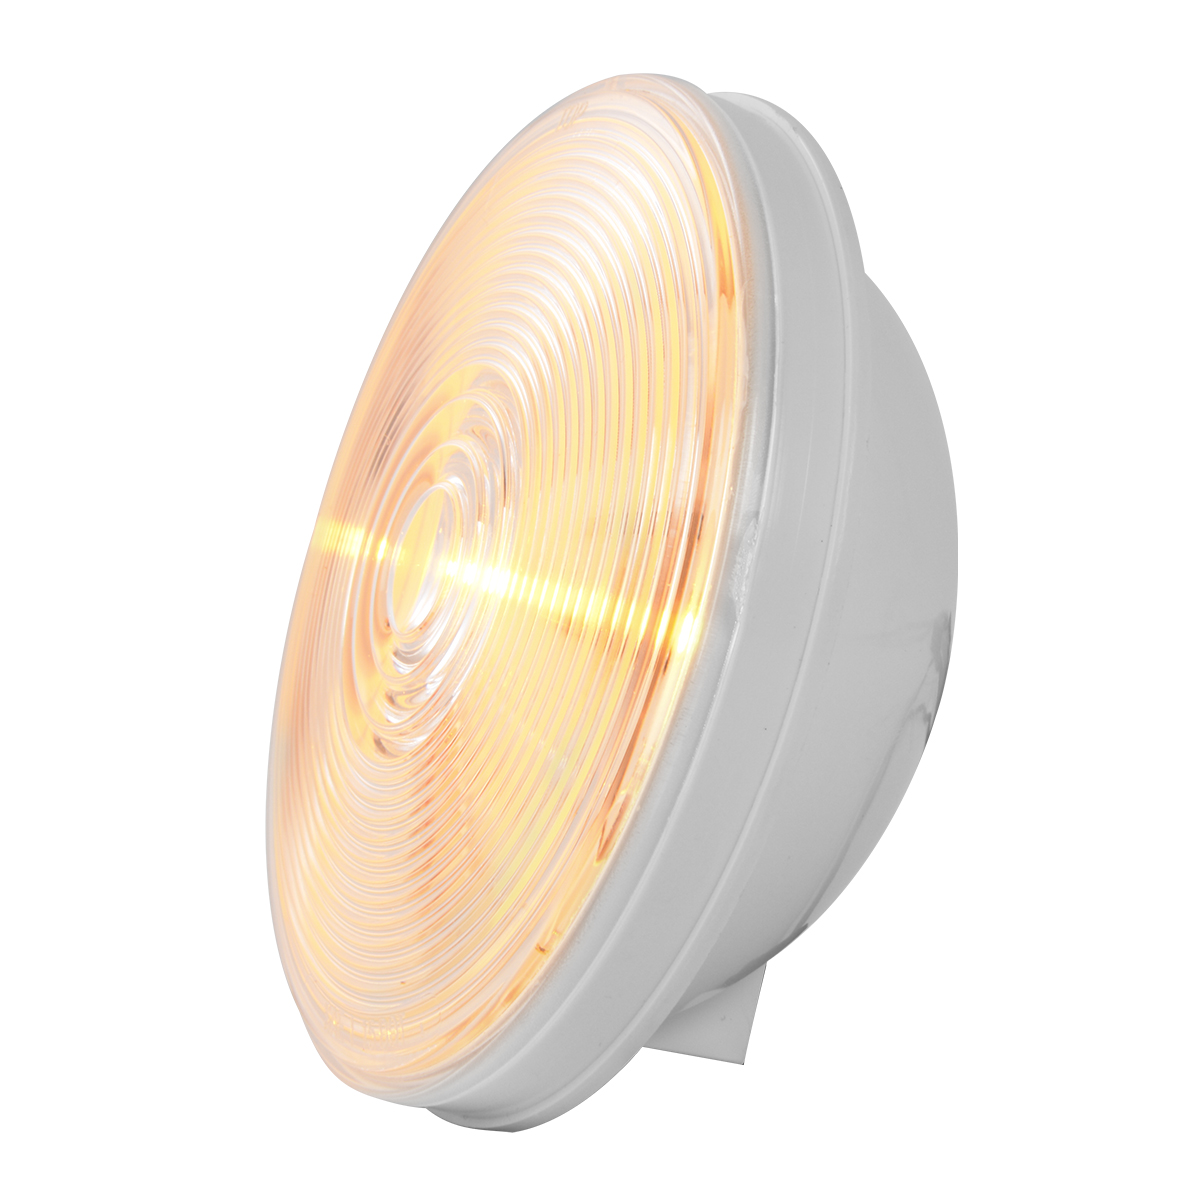 "75921 Amber/Clear 4"" Single LED Light"